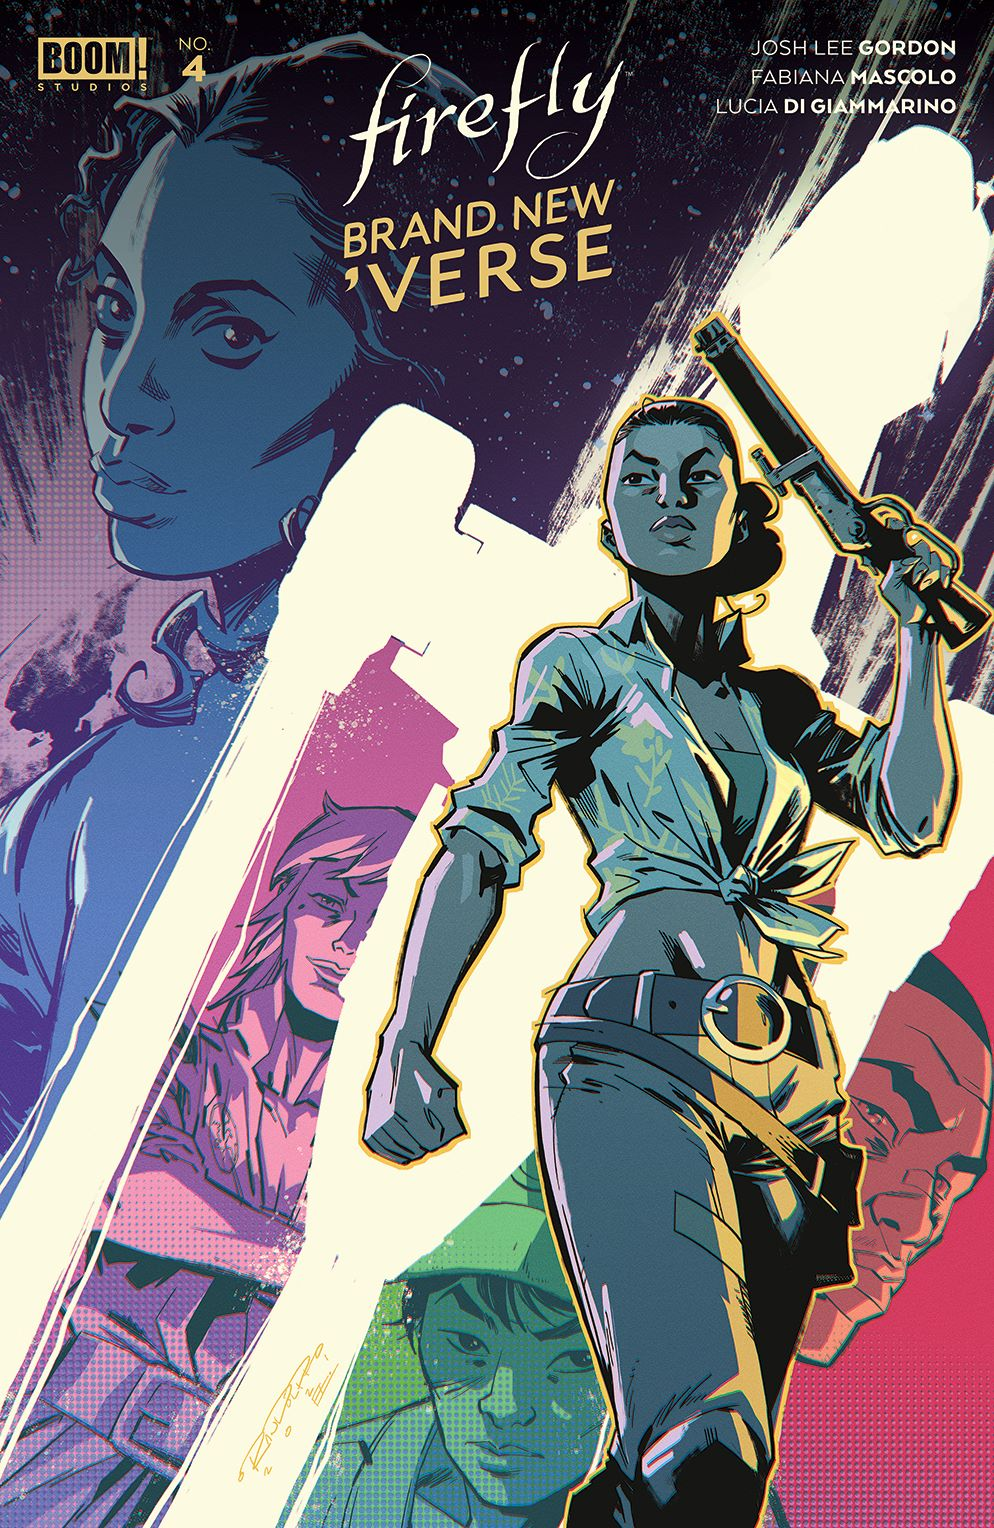 Firefly_BrandNewVerse_004_Cover_C_Variant ComicList Previews: FIREFLY A BRAND NEW 'VERSE #4 (OF 6)